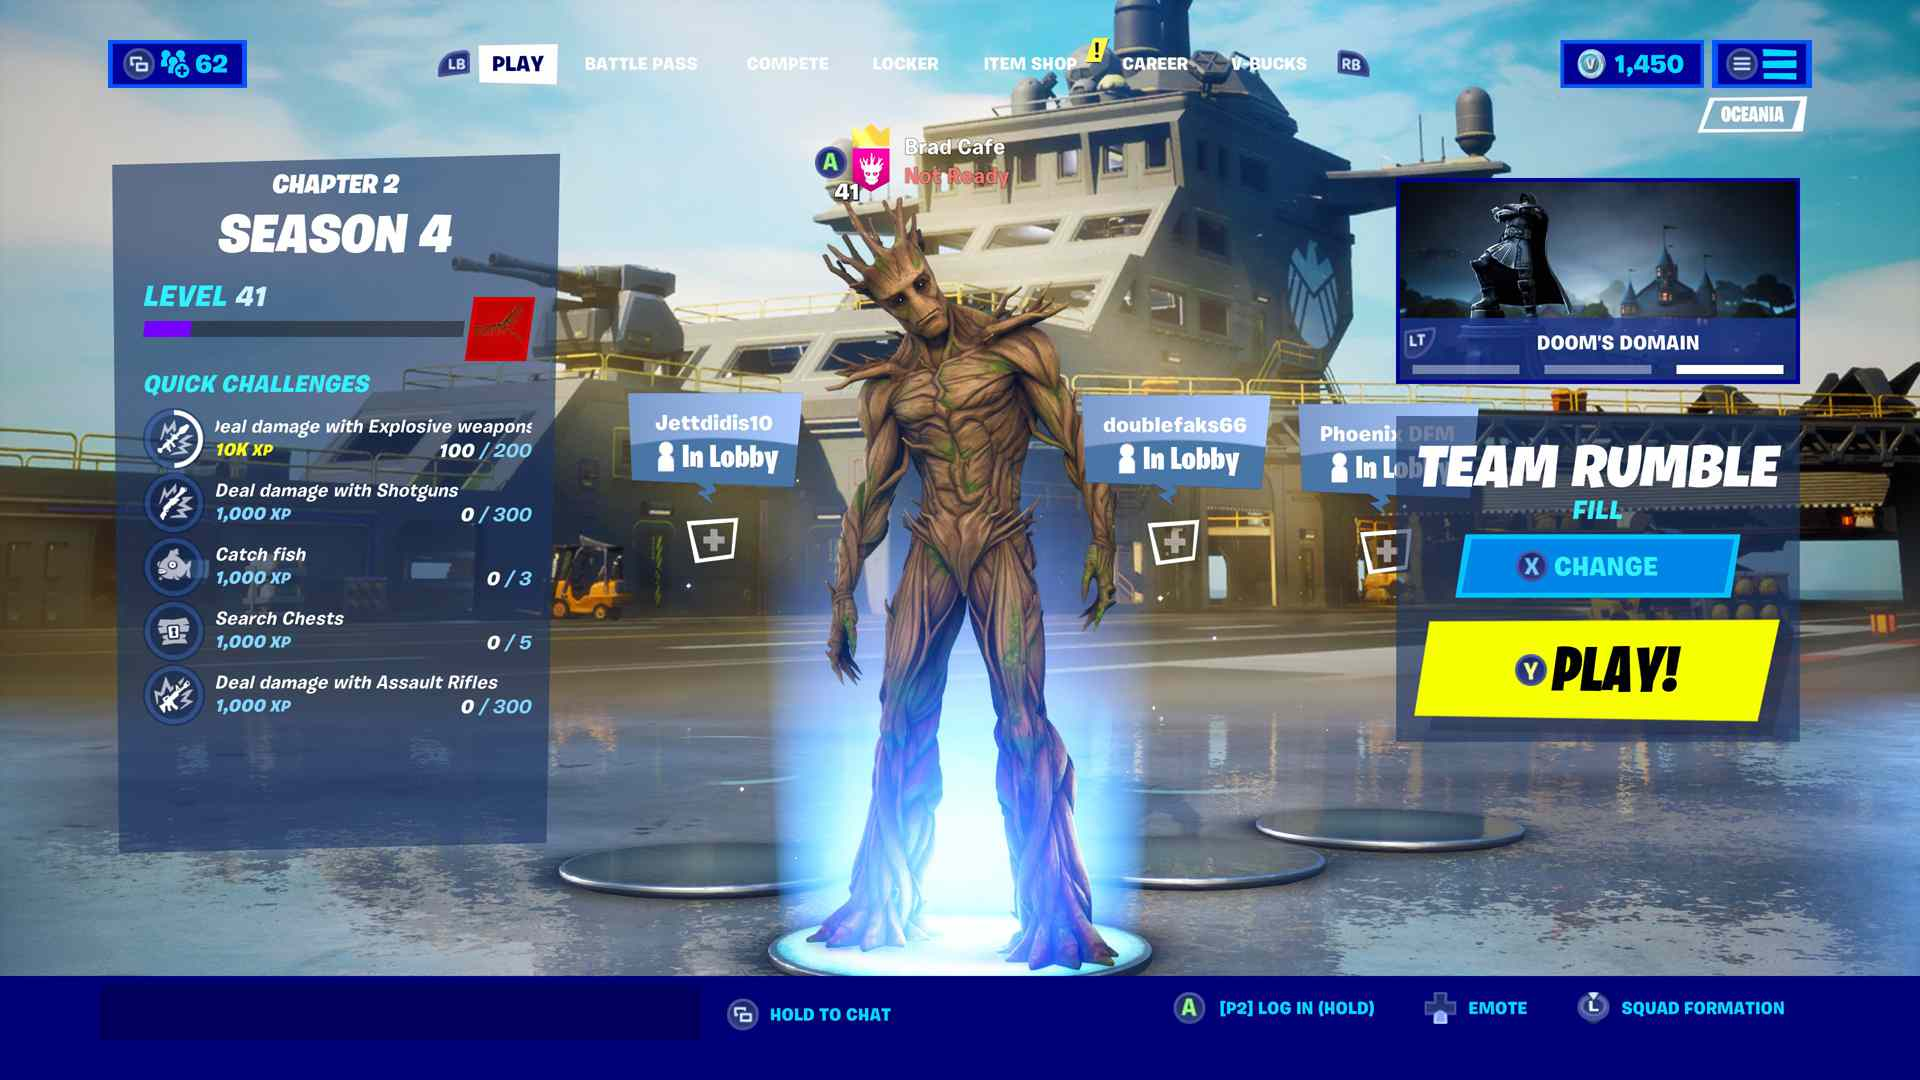 Fortnite lobby with Groot.